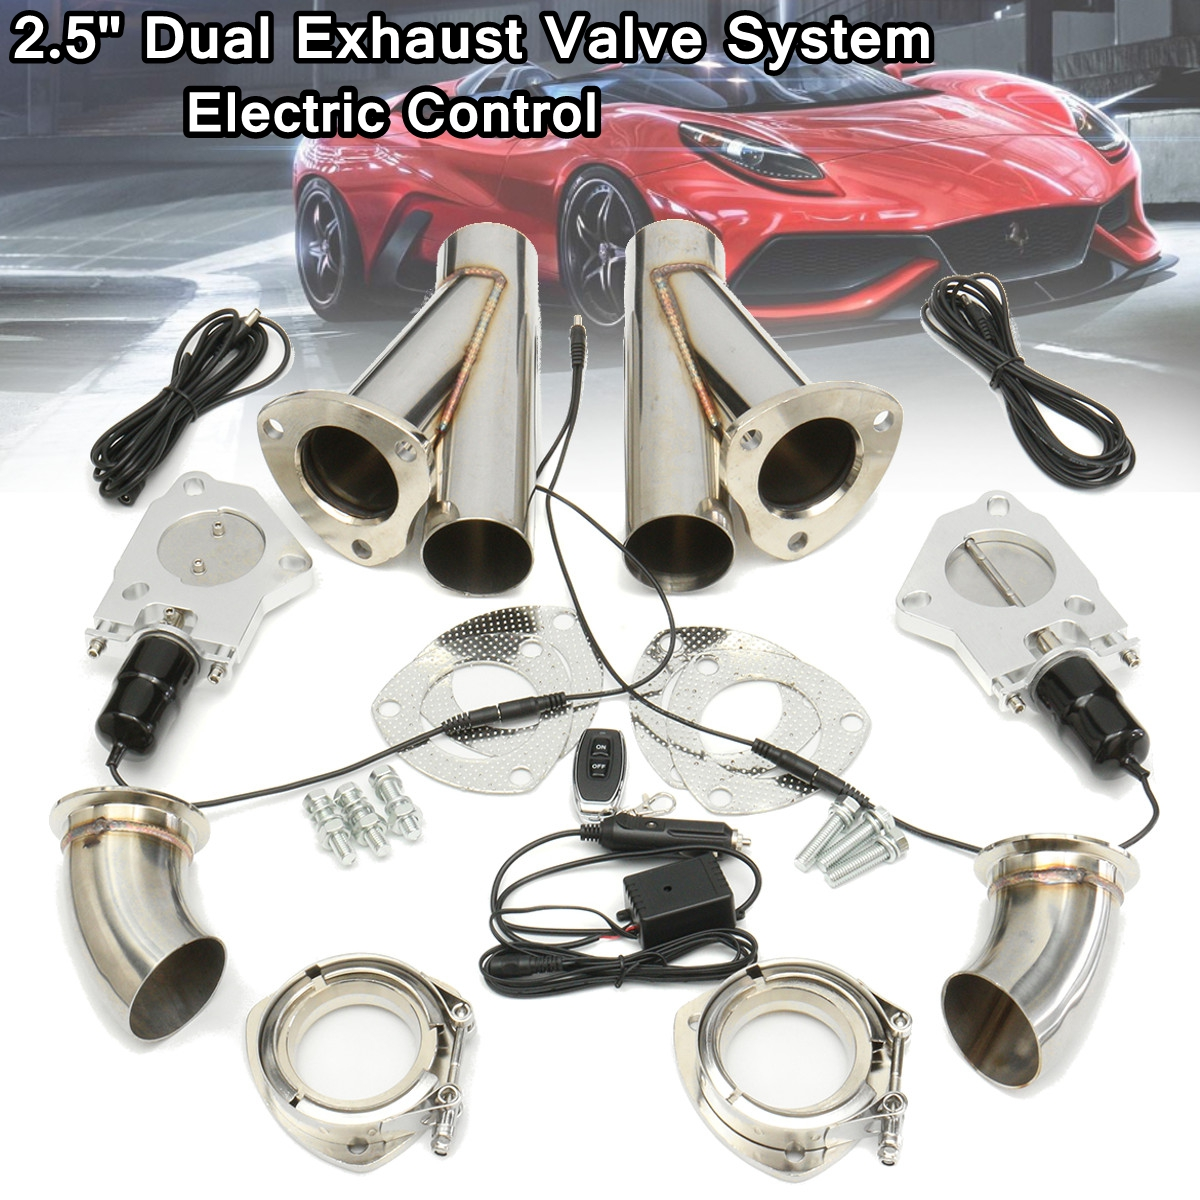 2.5 Inch 6.3mm Dual Exhaust Catback Down Pipe Cutout Valve System Electric Control Kit